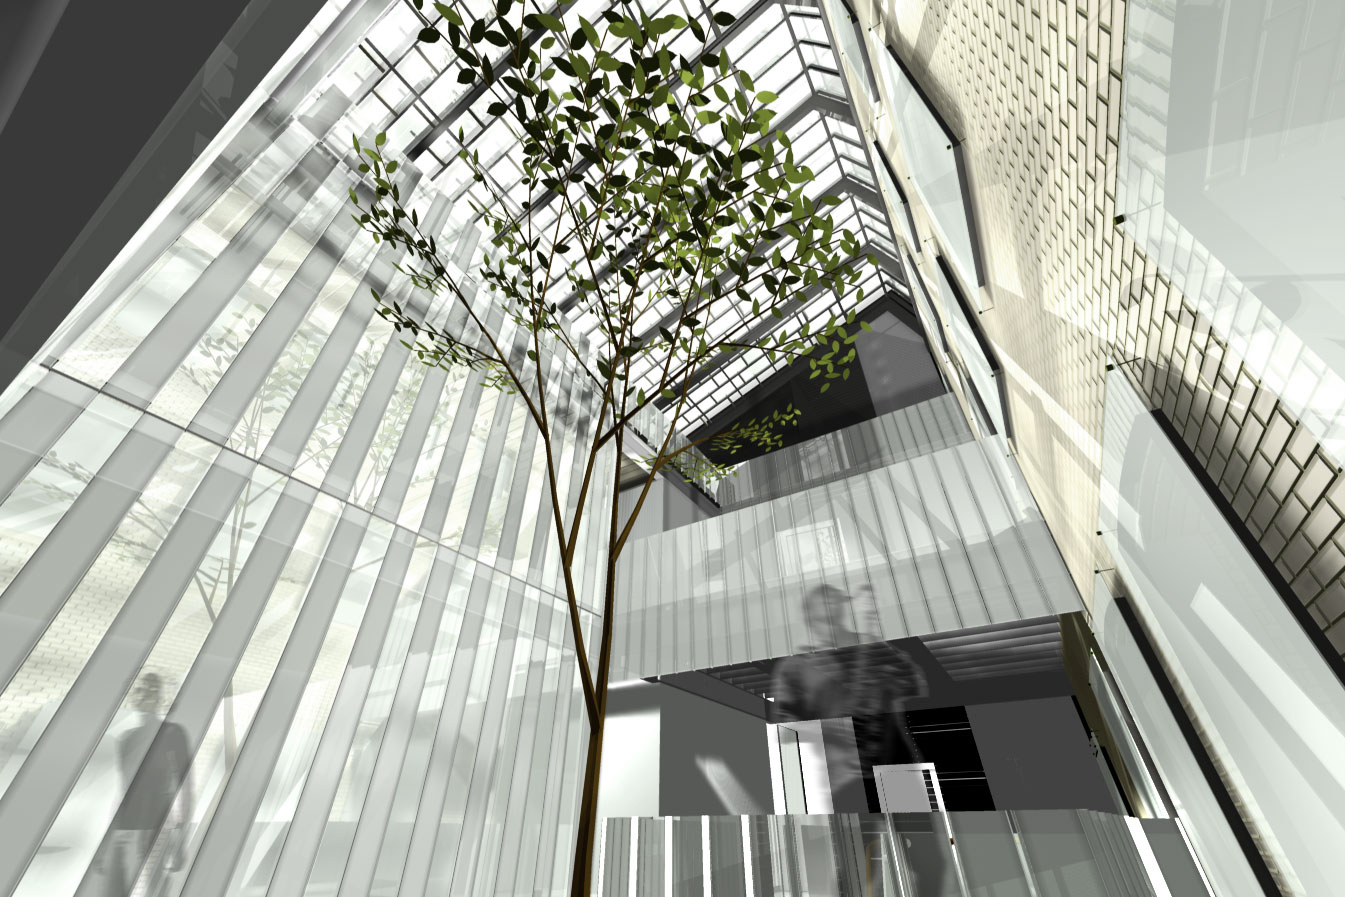 birks-building-renovation-atrium.jpg